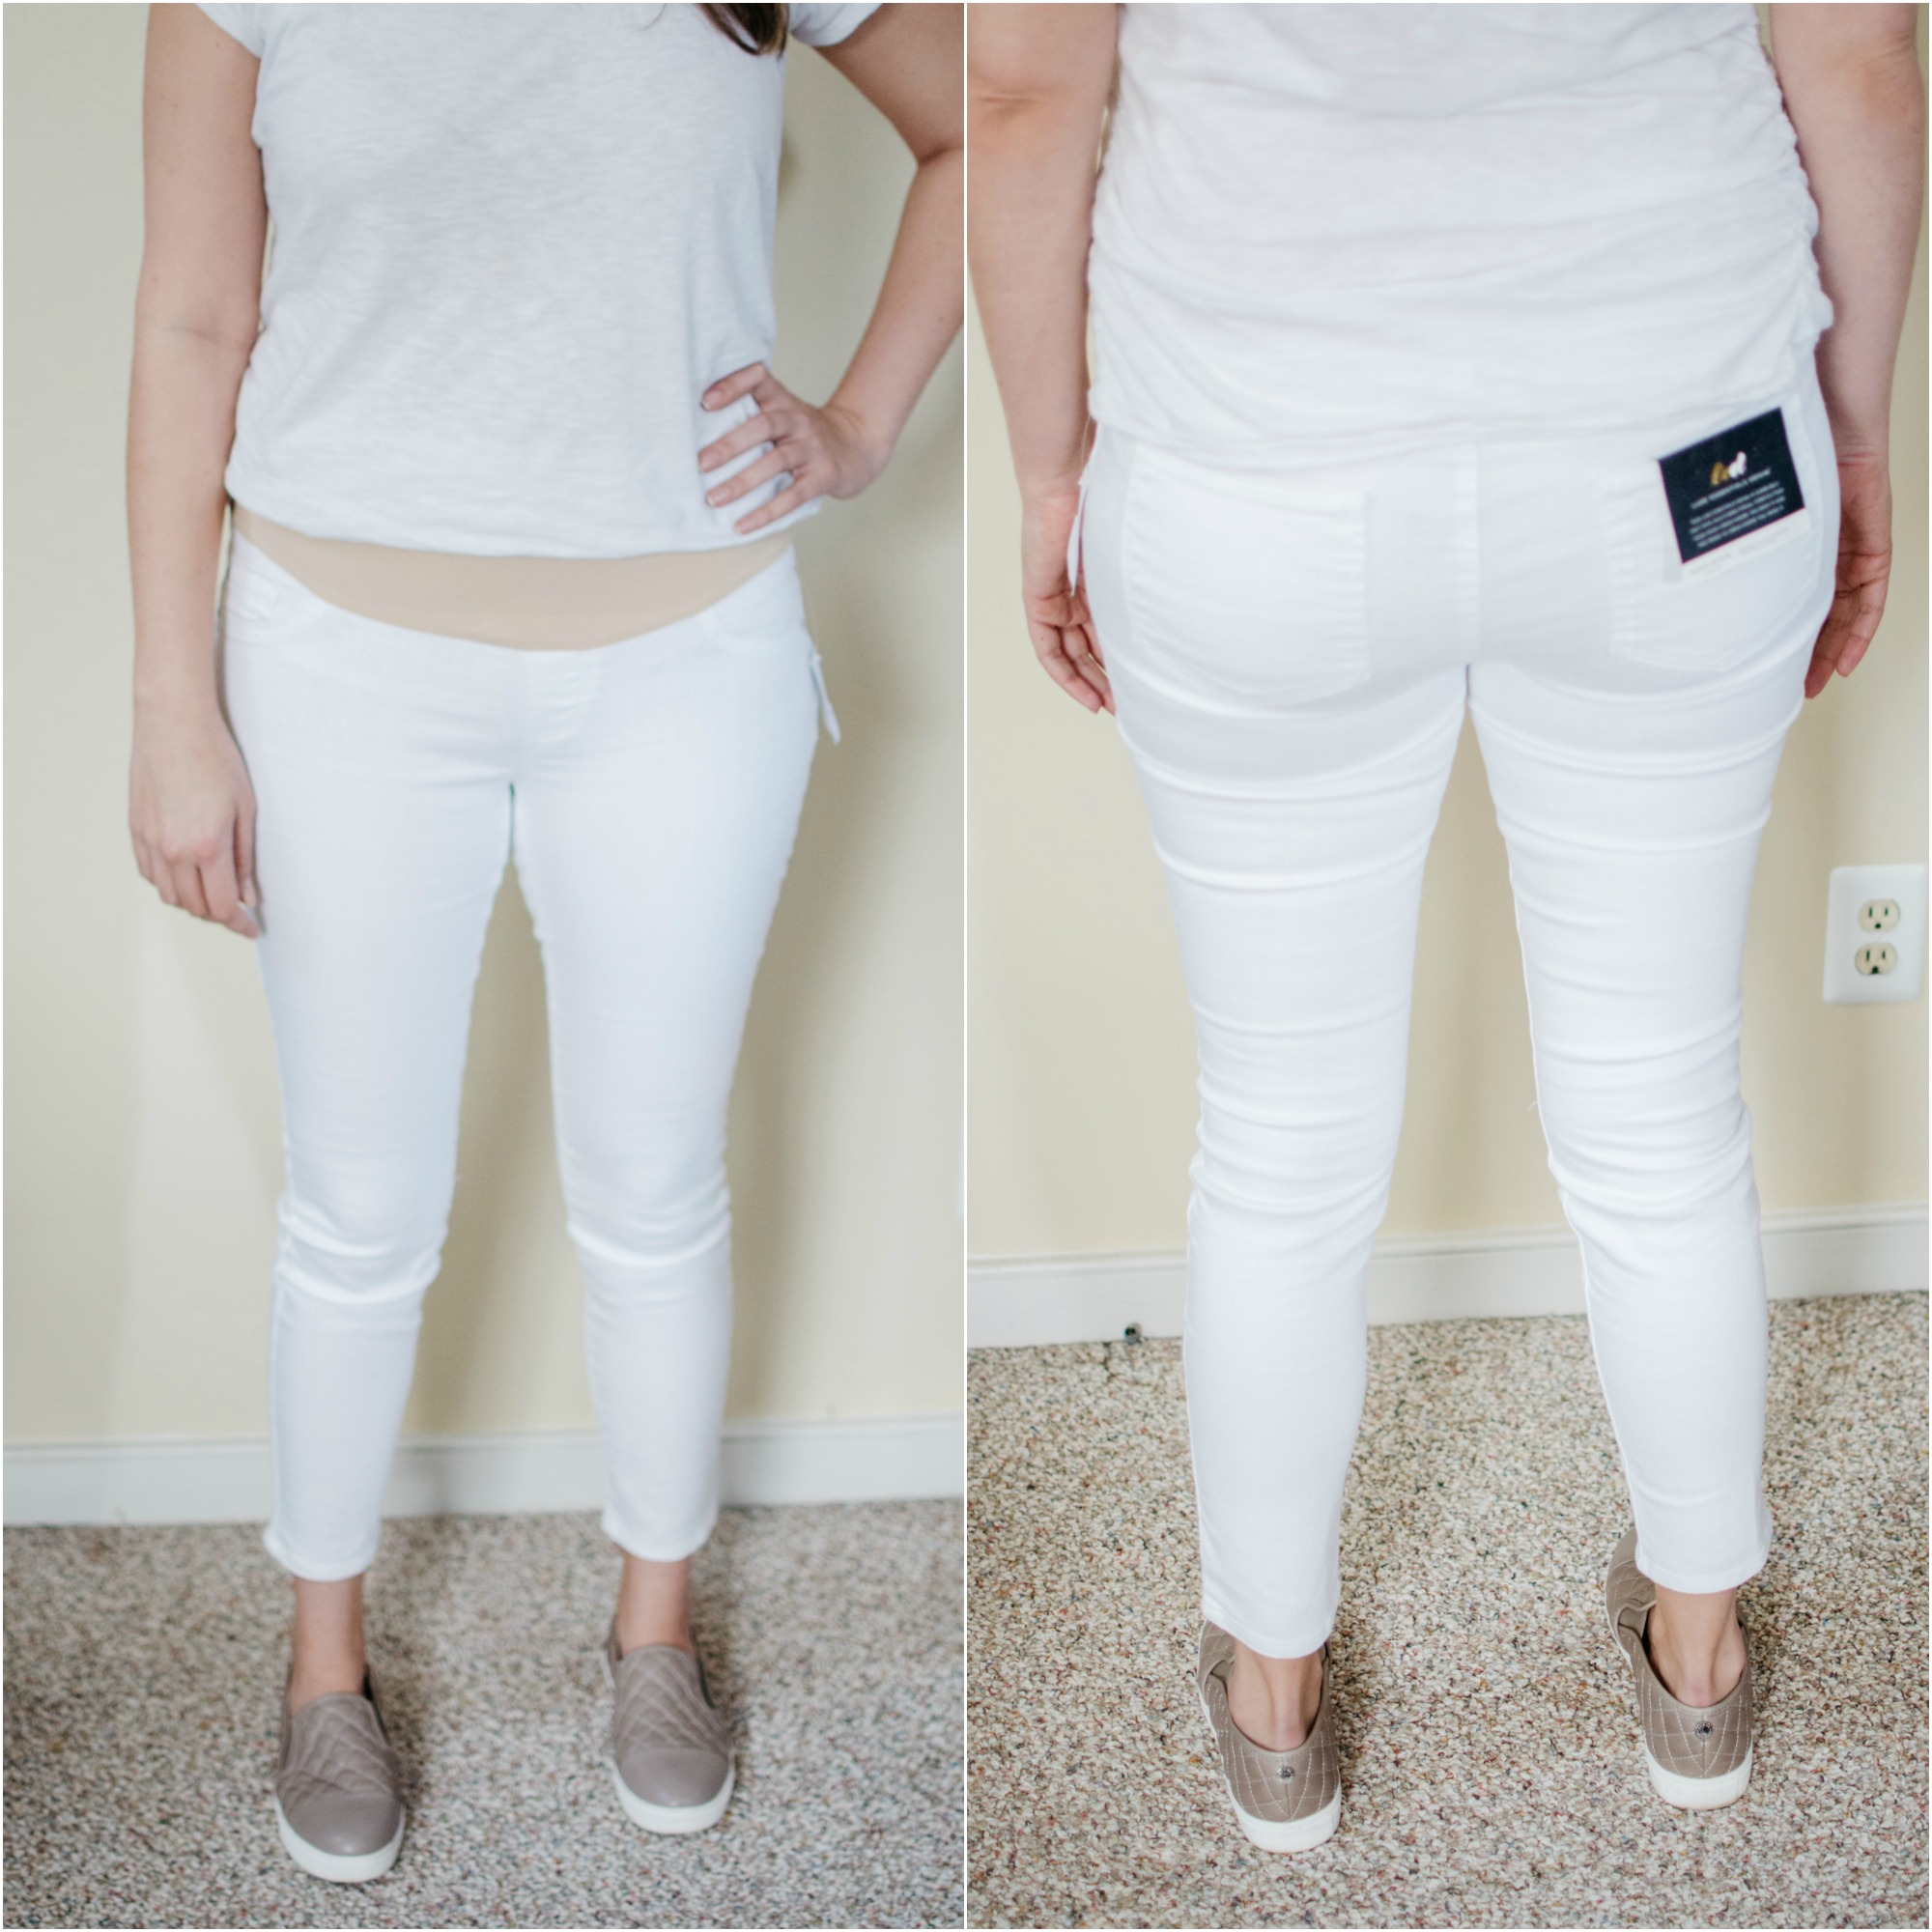 Luxe Essentials maternity jeans A Pea in the Pod - designer maternity jeans review | See reviews of over 15 maternity jeans brands by clicking through to this post! | bylaurenm.com